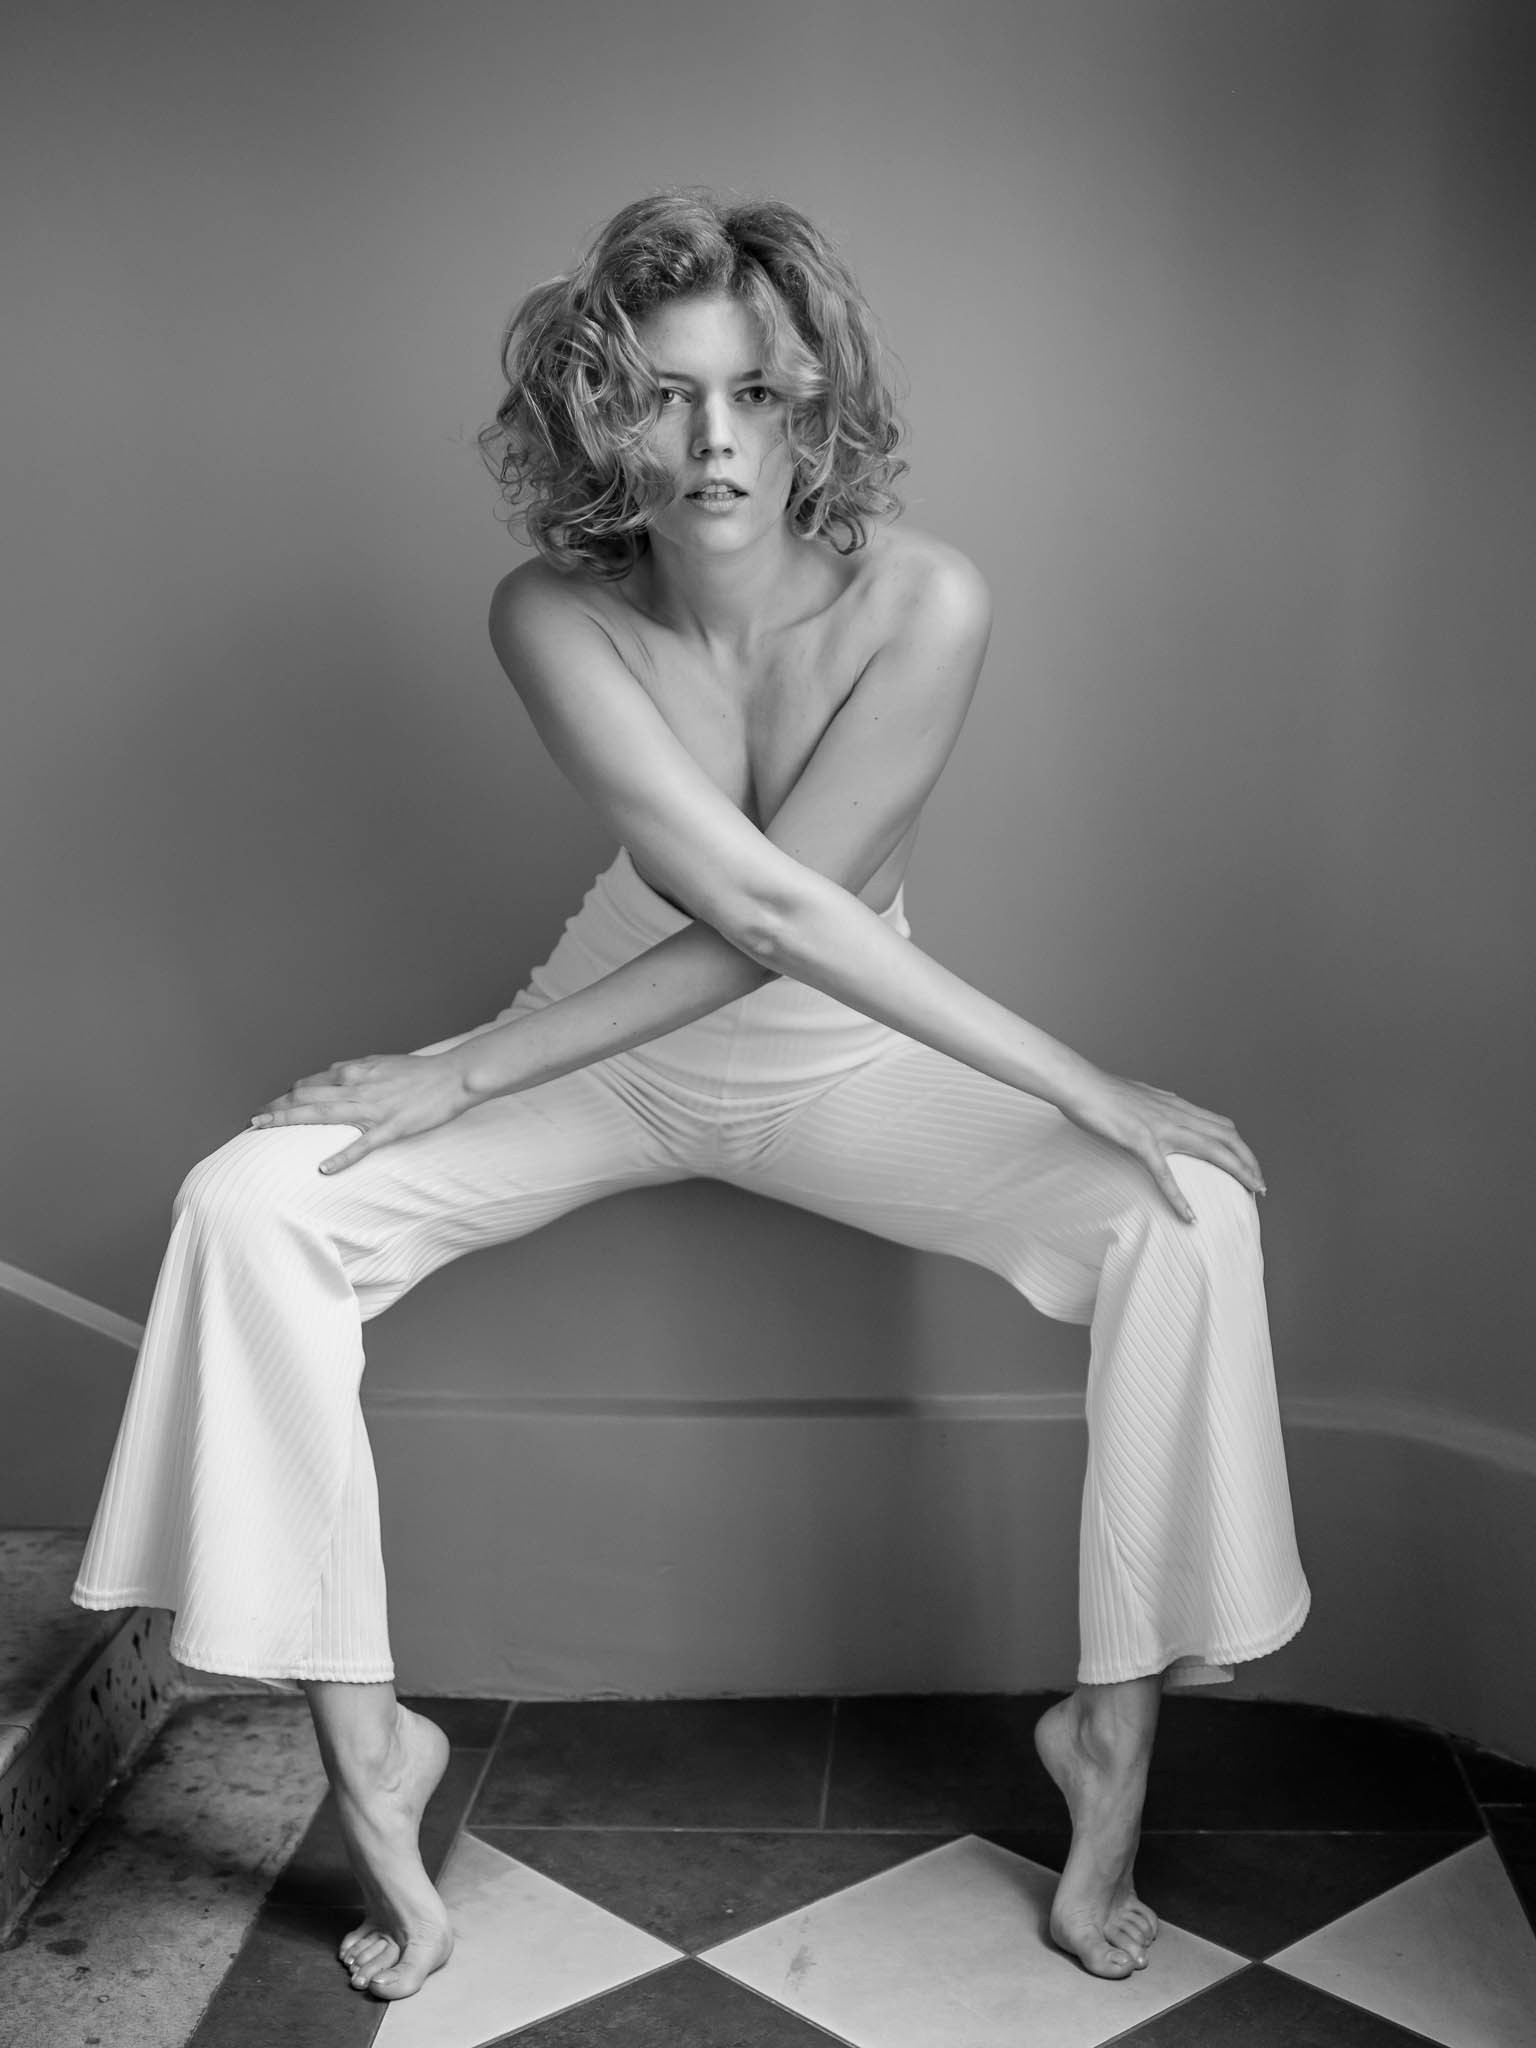 The model Kate poses for the black and white portrait by the professional photographer Damien Lovegrove, a RYDE client.